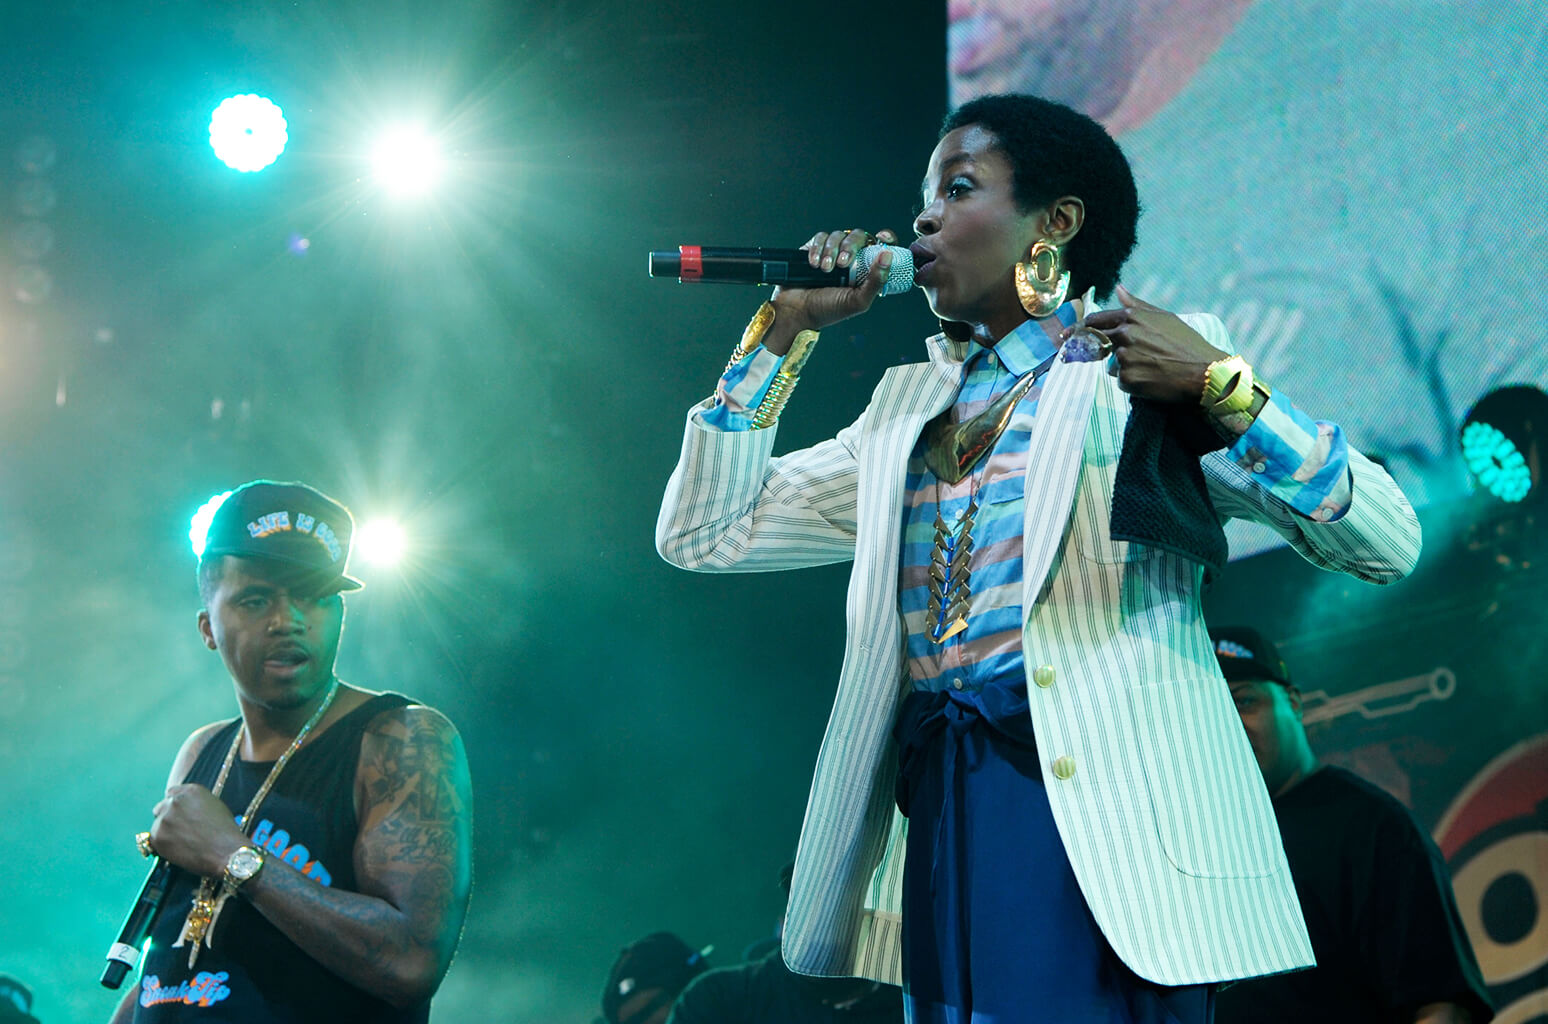 Lauryn Hill & Nas Co-Headlining Tour